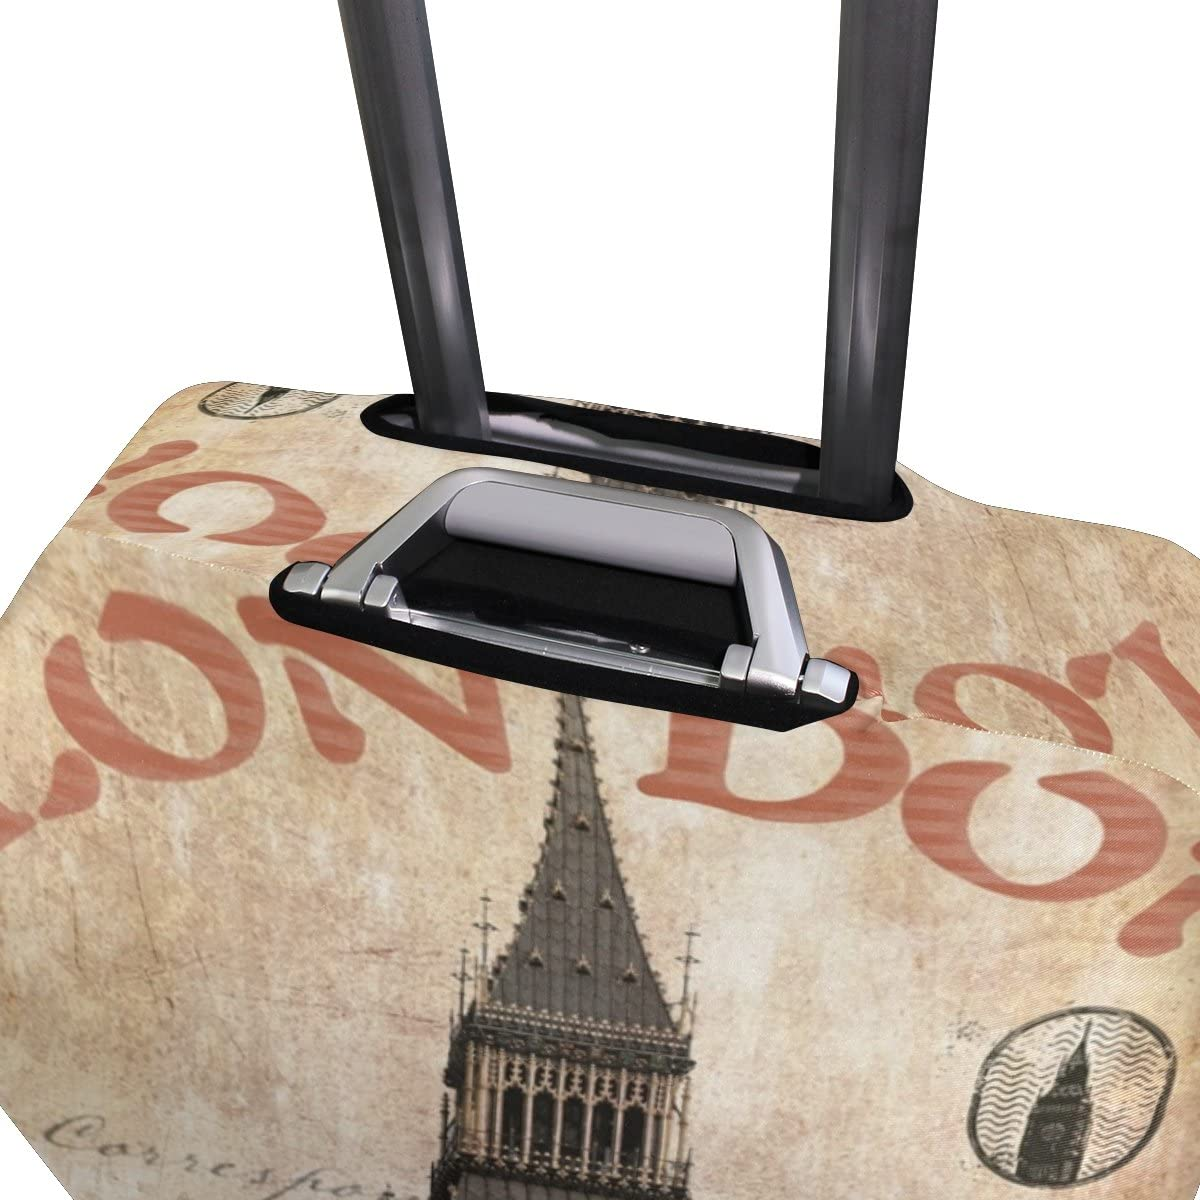 Luggage Protective Covers with Surfing Vintage Big Ben Washable Travel Luggage Cover 18-32 Inch